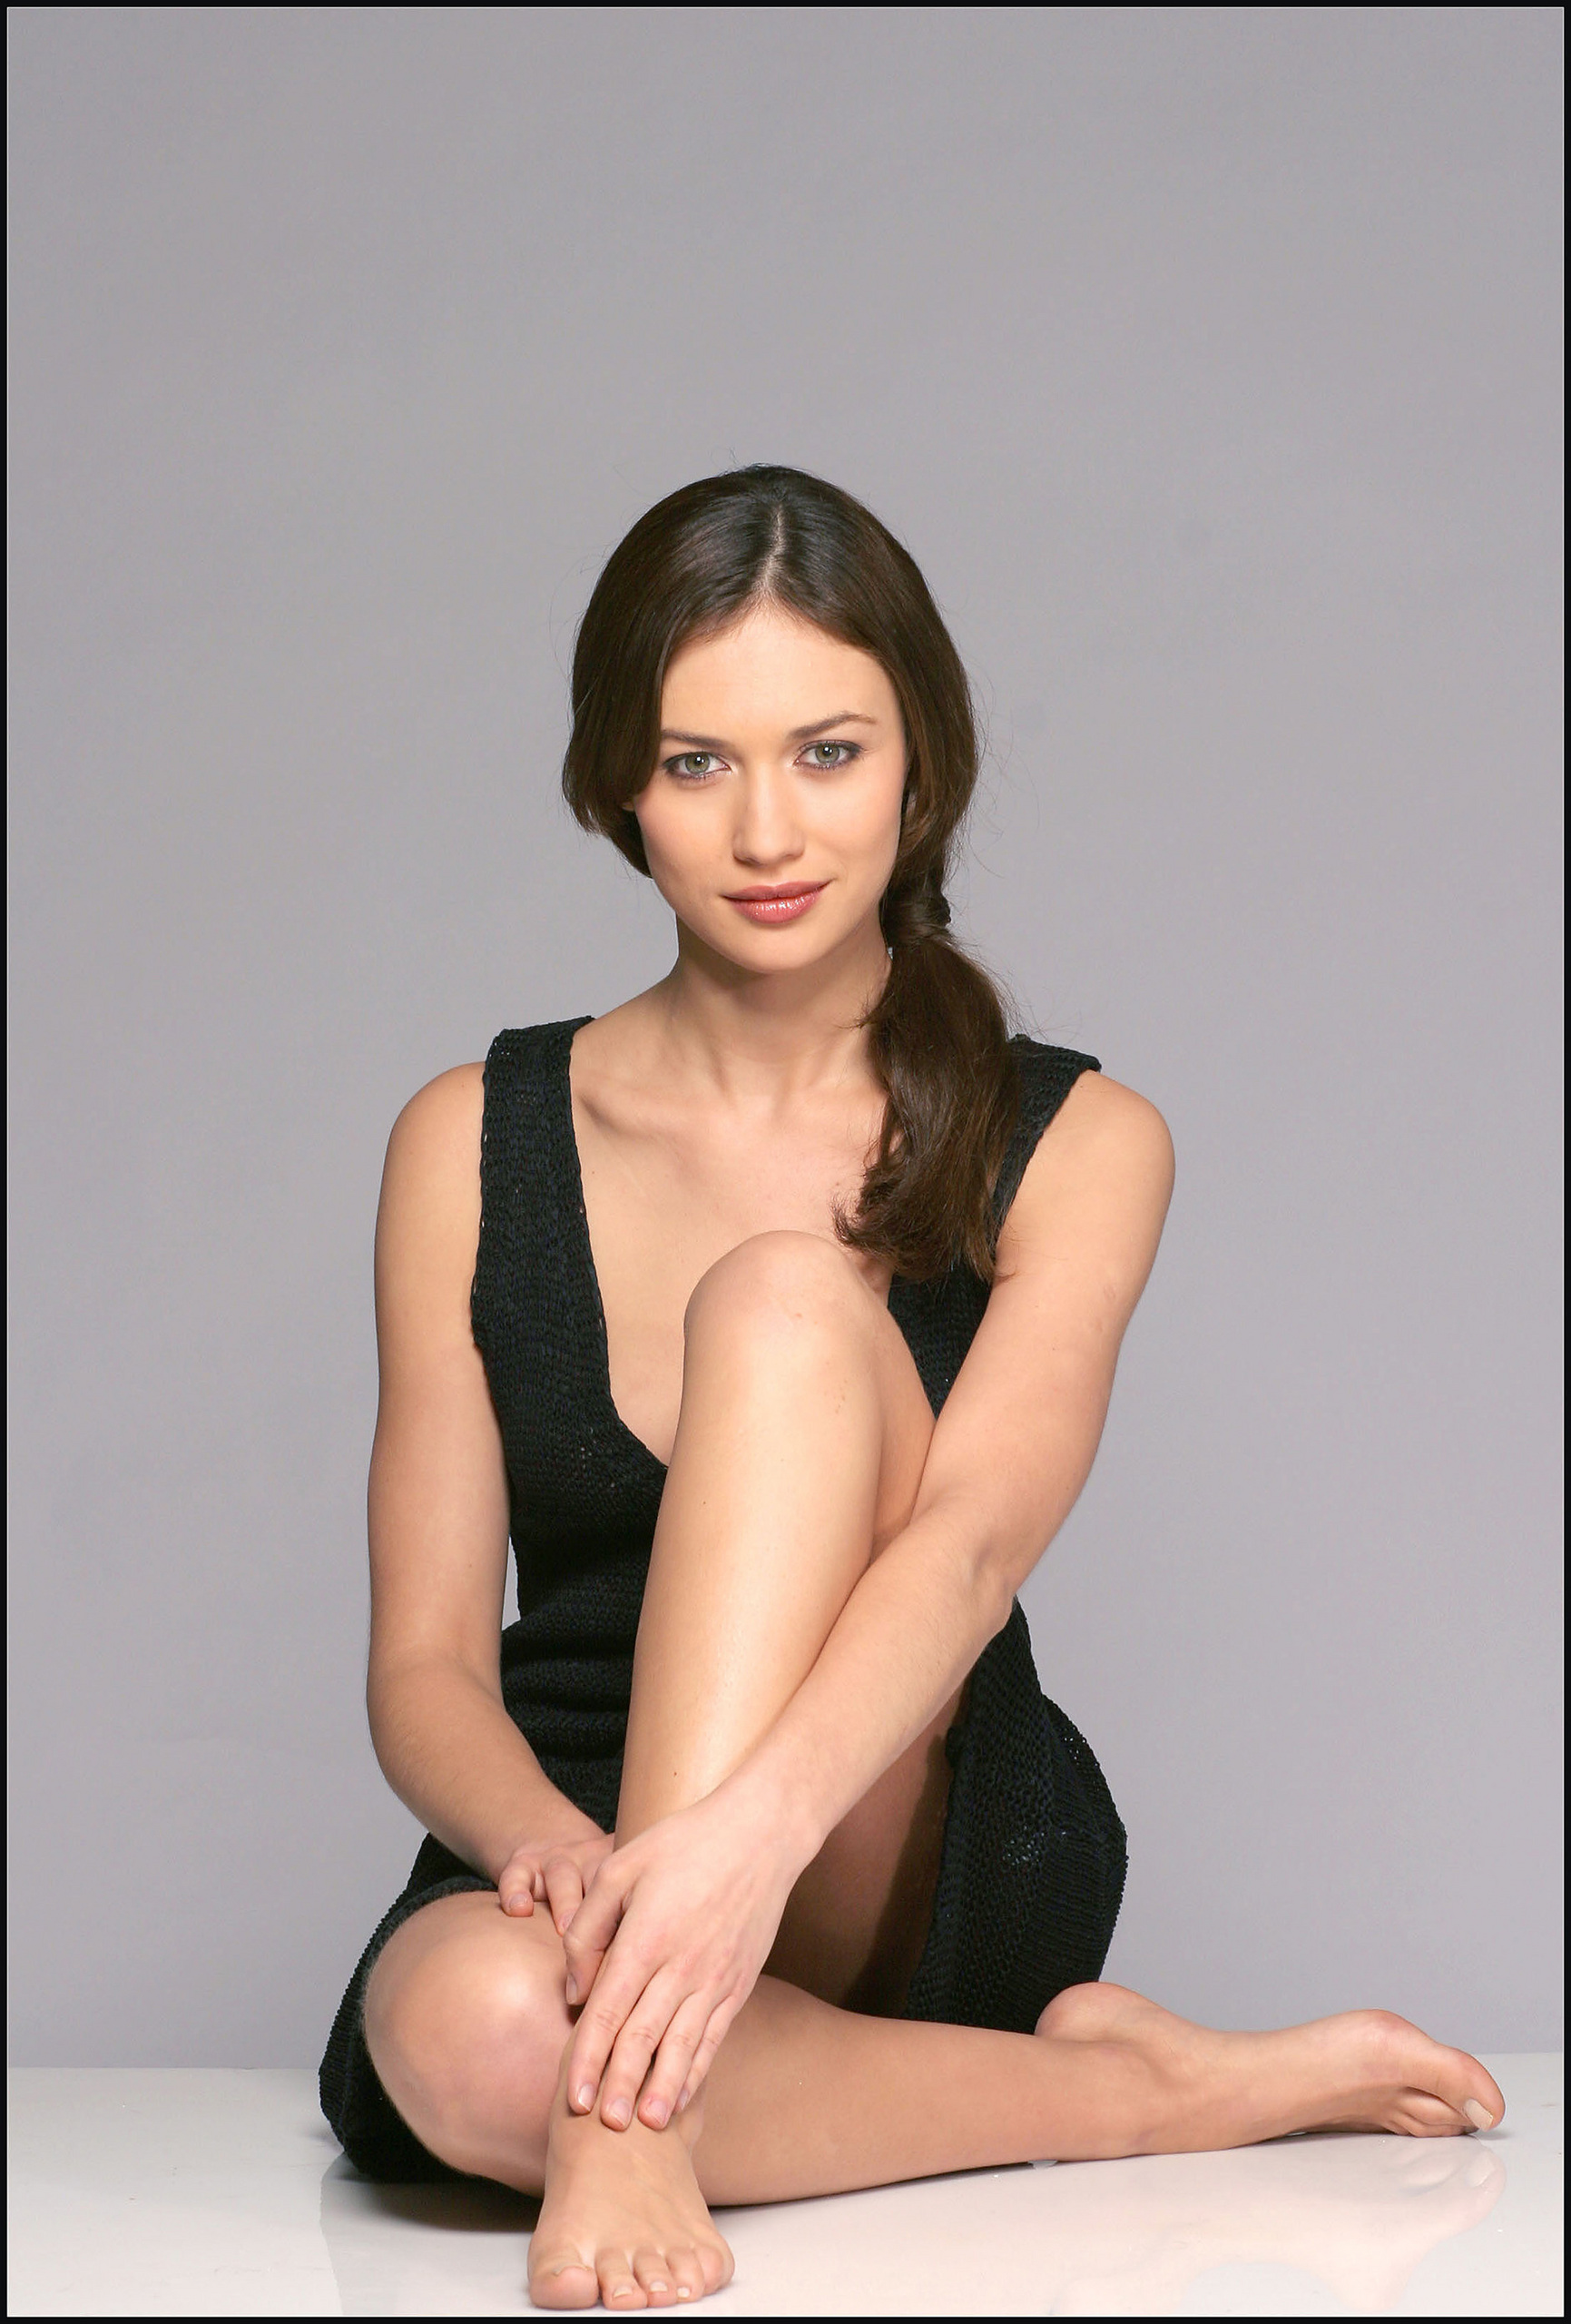 http://images2.fanpop.com/images/photos/3800000/Olga-olga-kurylenko-3868131-1731-2560.jpg